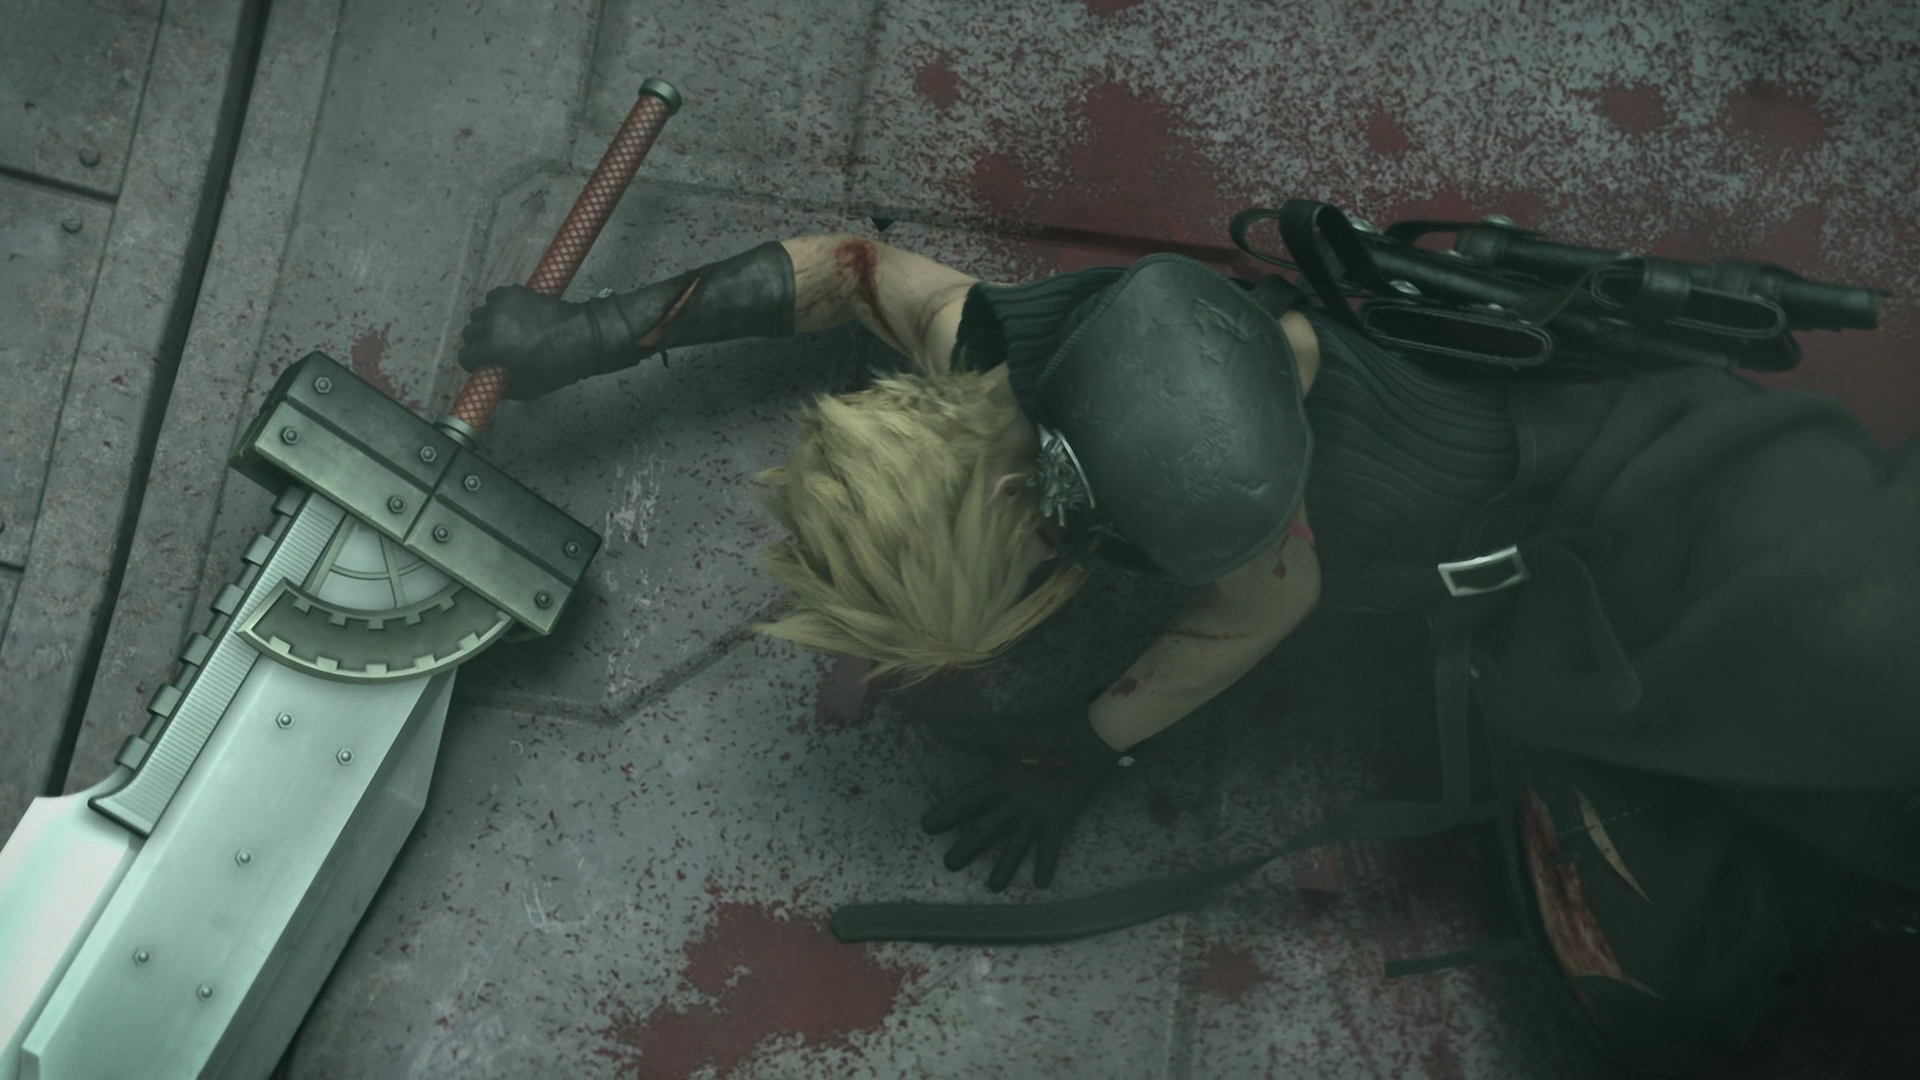 Free Download Cloud Strife Buster Sword 1920x1080 Wallpaper